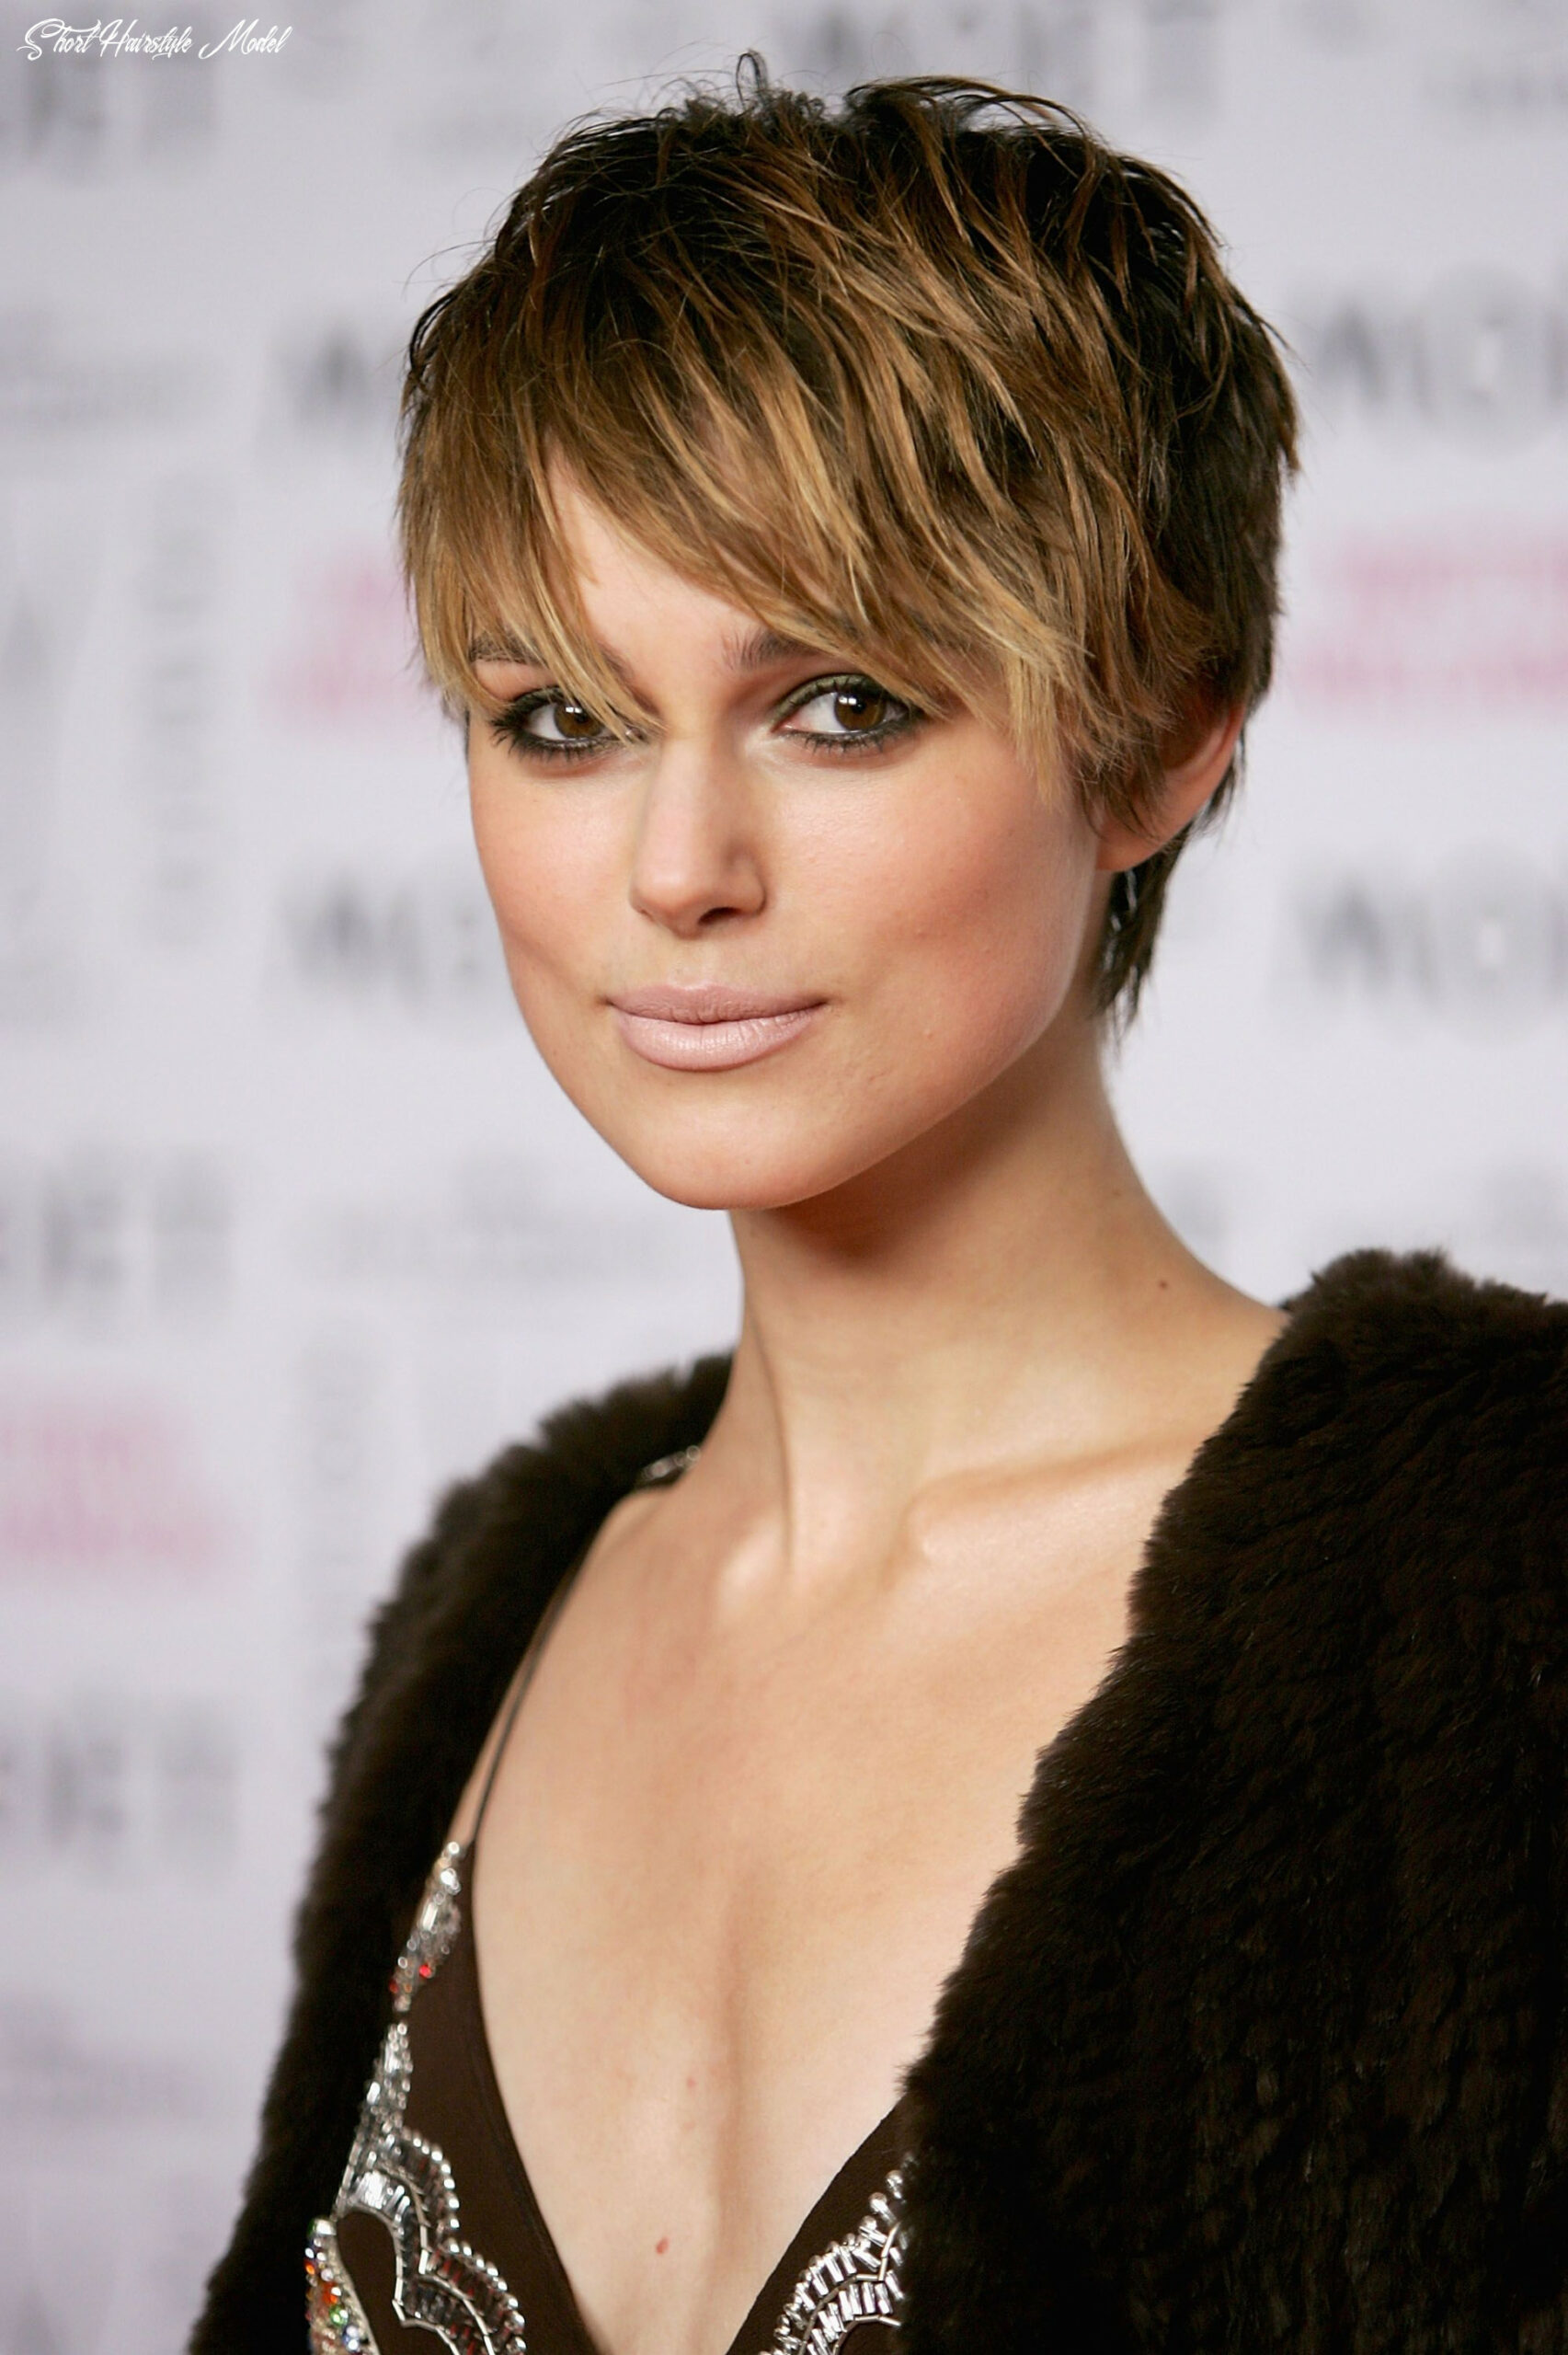 9 best short hairstyles, haircuts & short hair ideas for 9 short hairstyle model